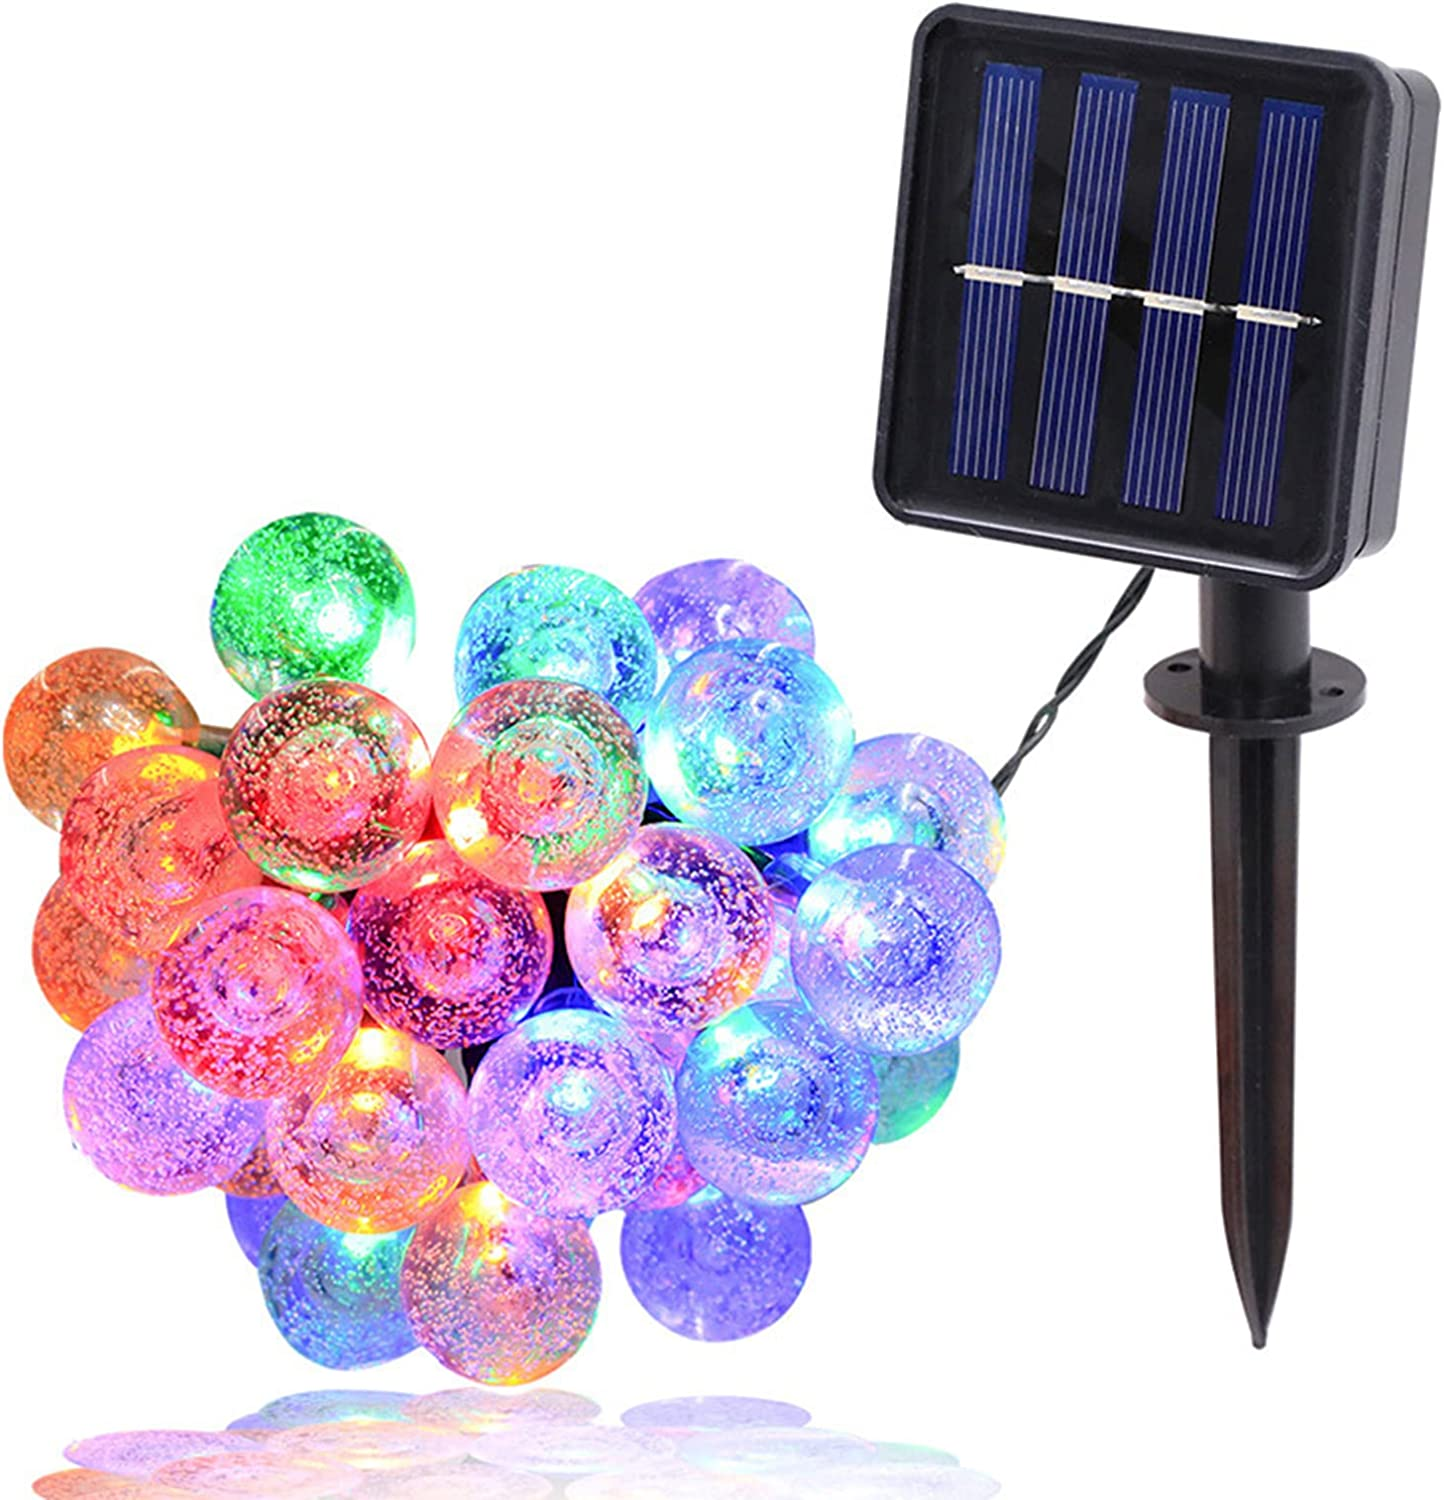 Max 41% OFF 2 Pack Outdoor Solar String Solar-Pow Modes Gifts 8 Waterproof Lights